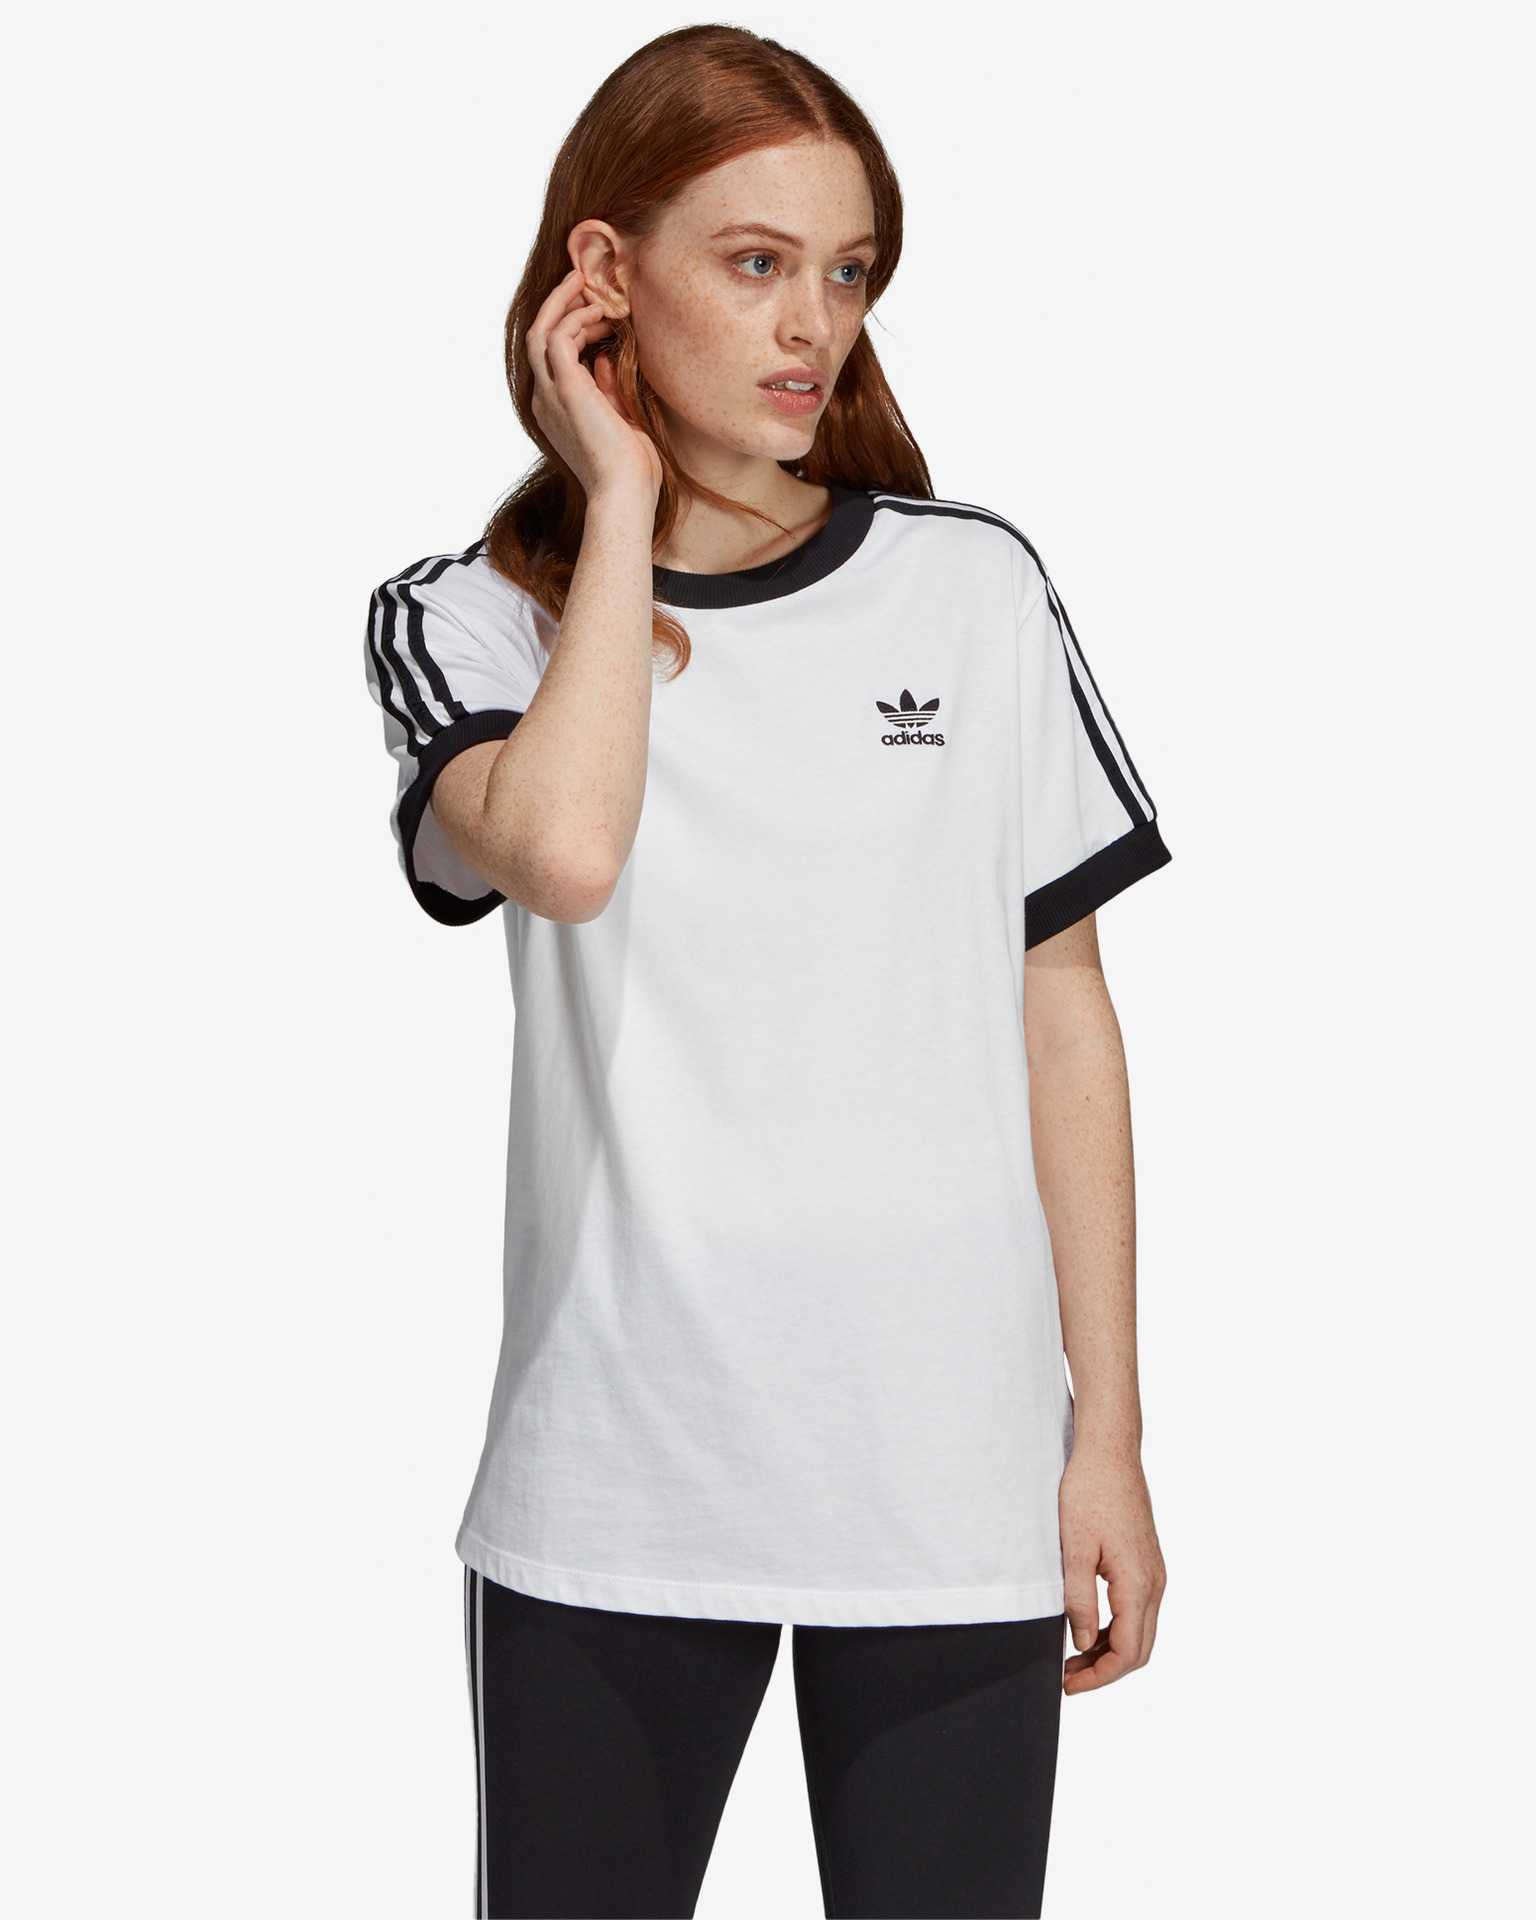 adidas Originals - 3-Stripes Triko | Bibloo.cz